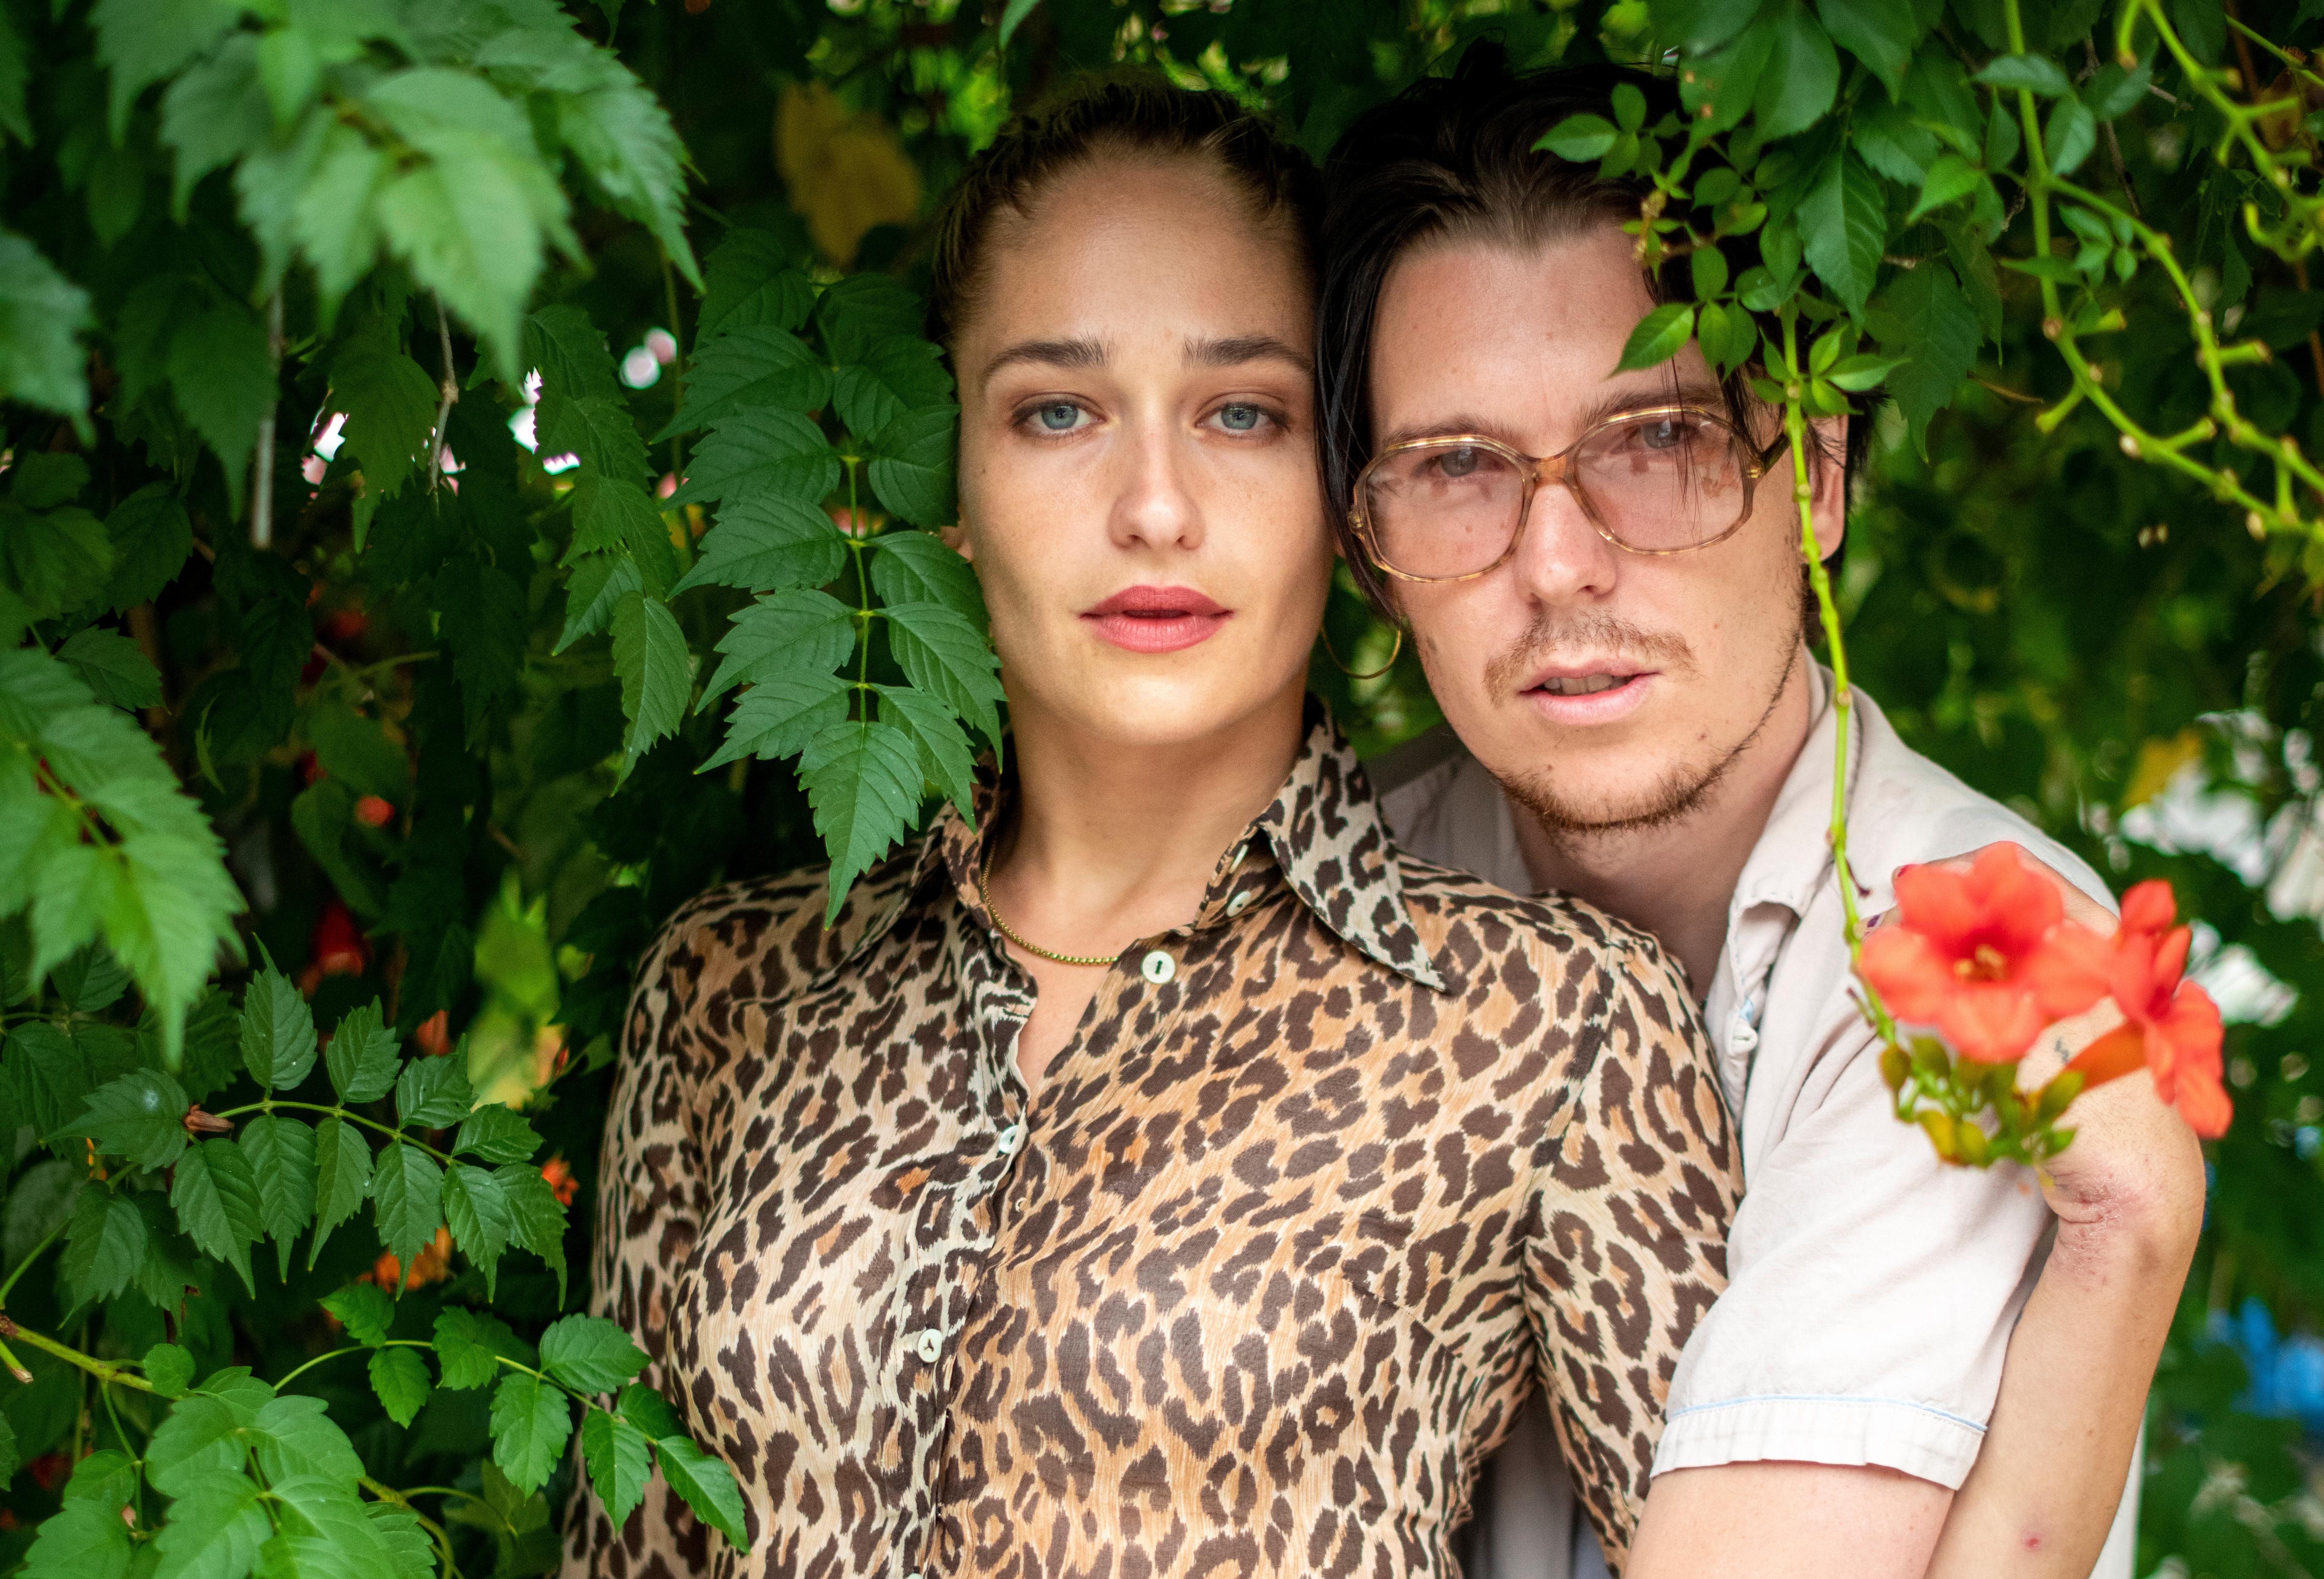 Alex Cameron, Jemima Kirke and the behaviour of men: 'I can't get away from writing about it'